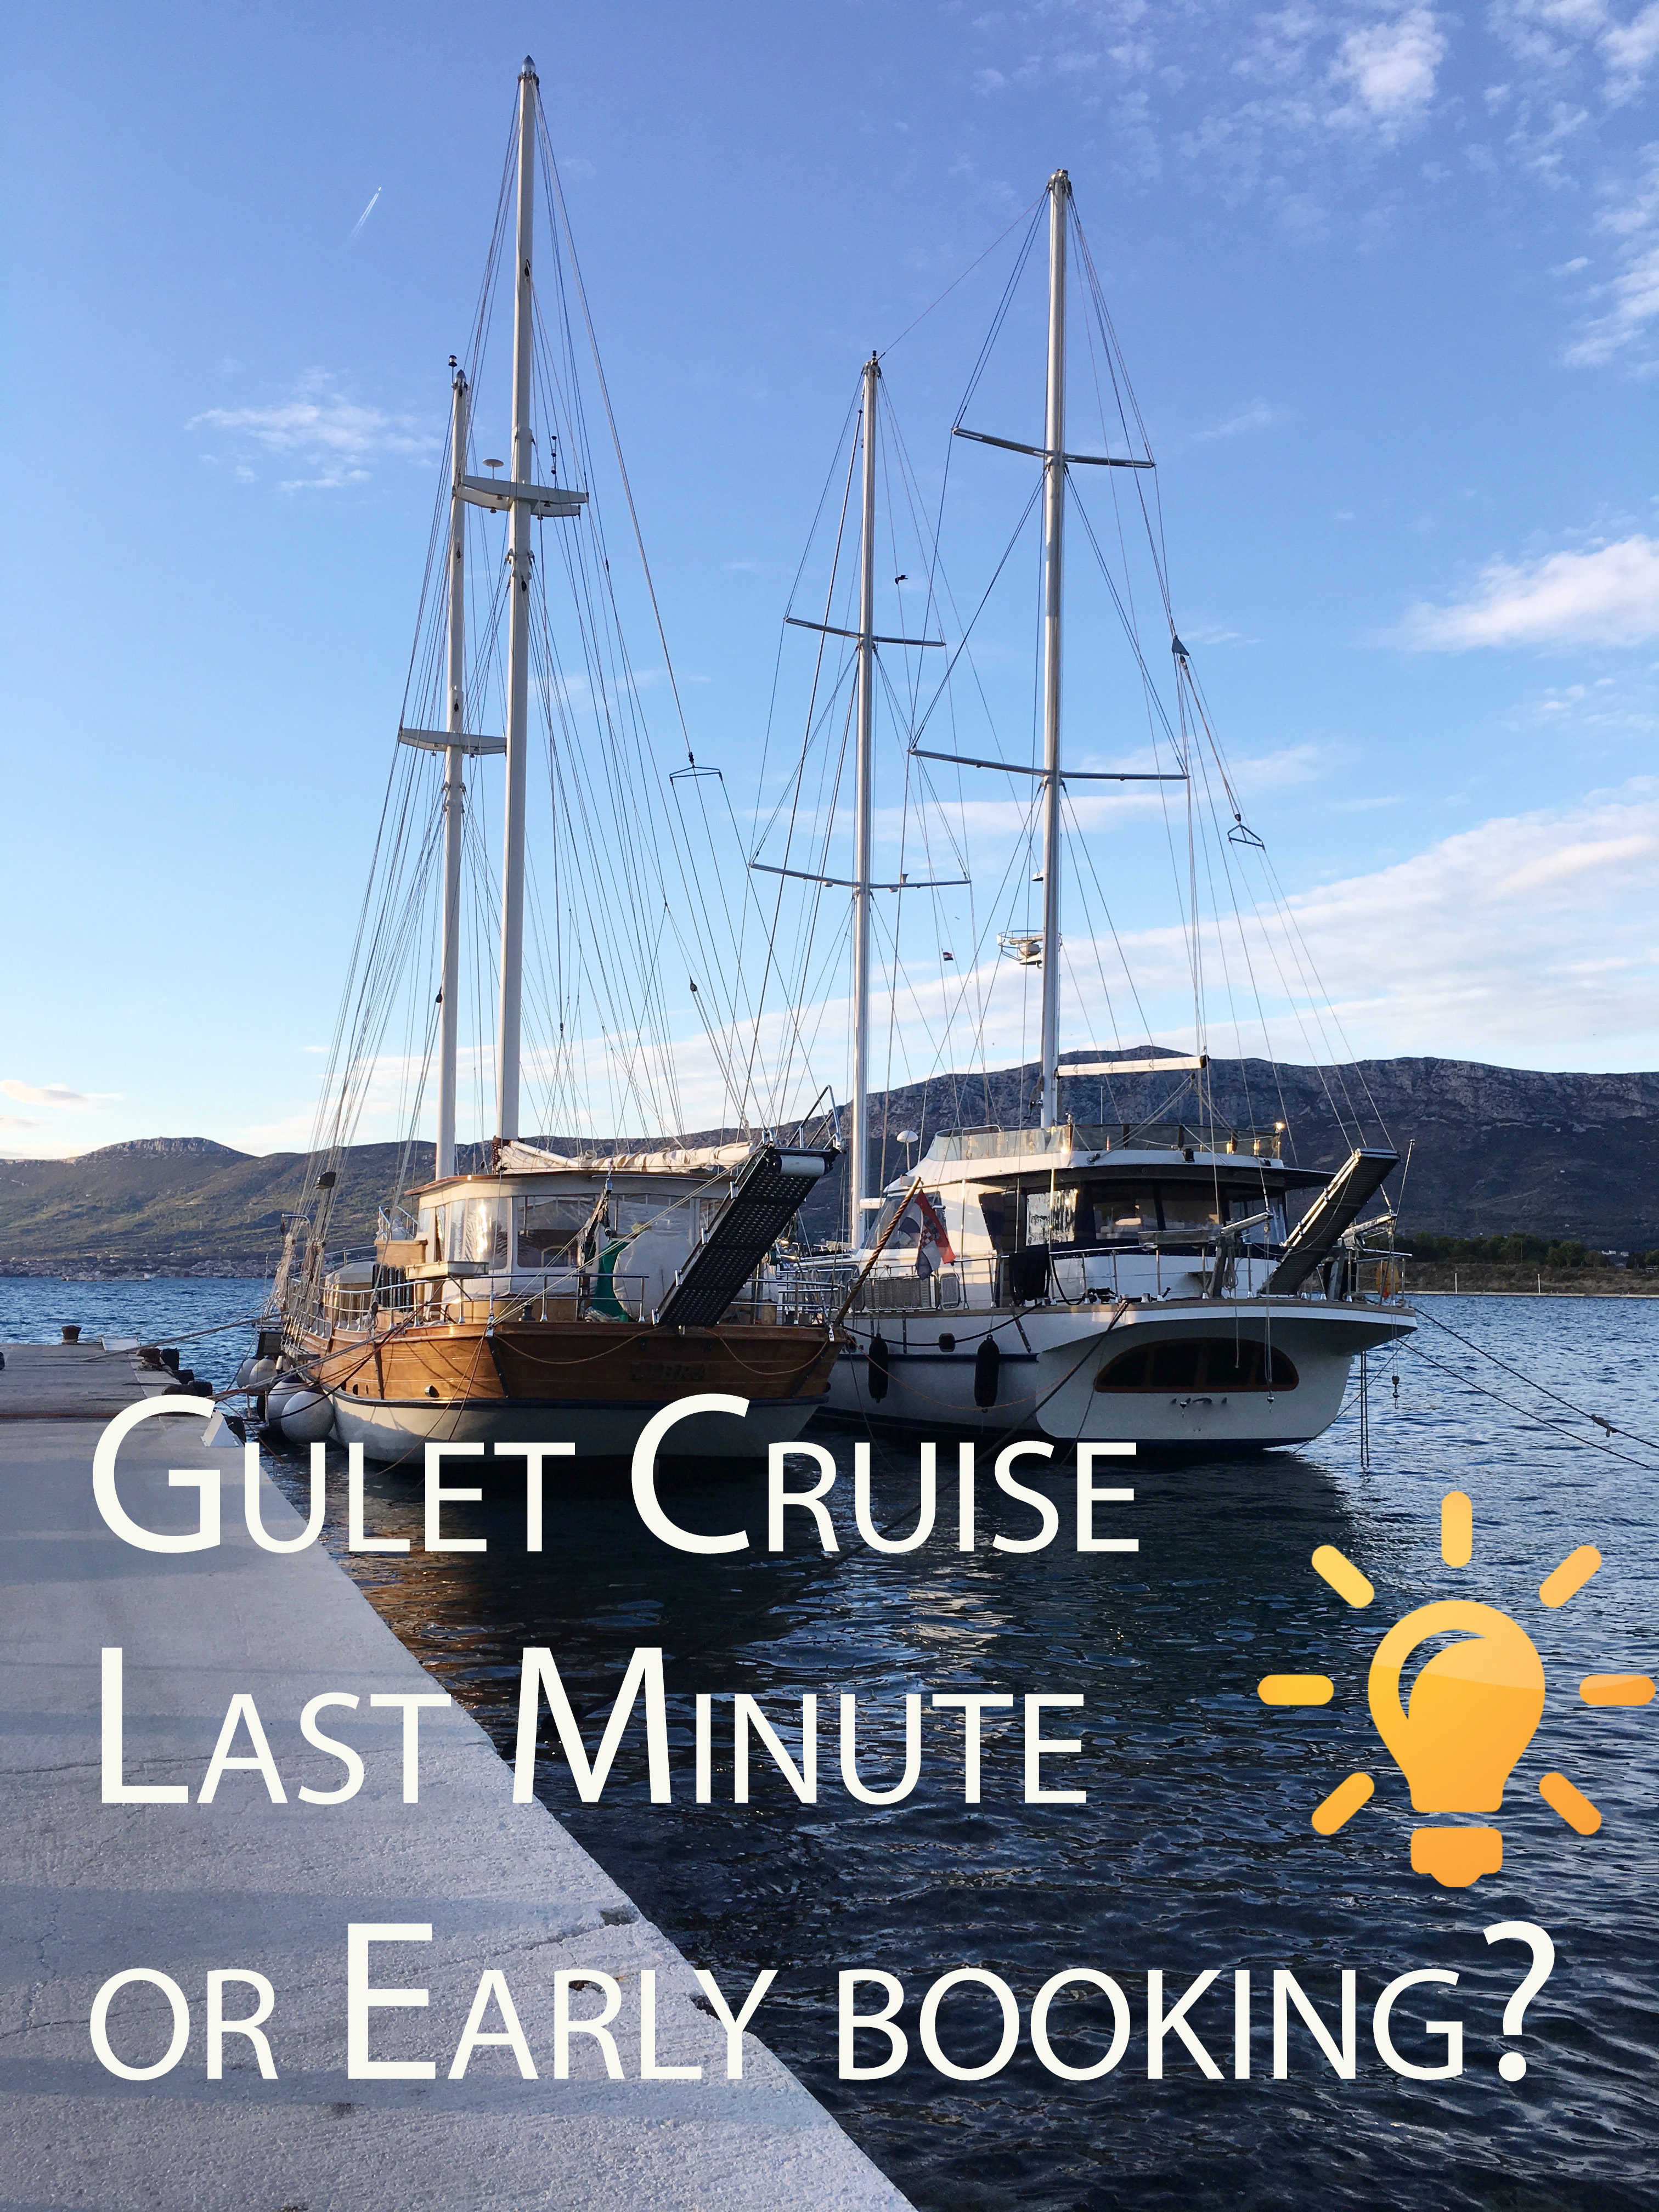 Gulet cruise last minute or early booking